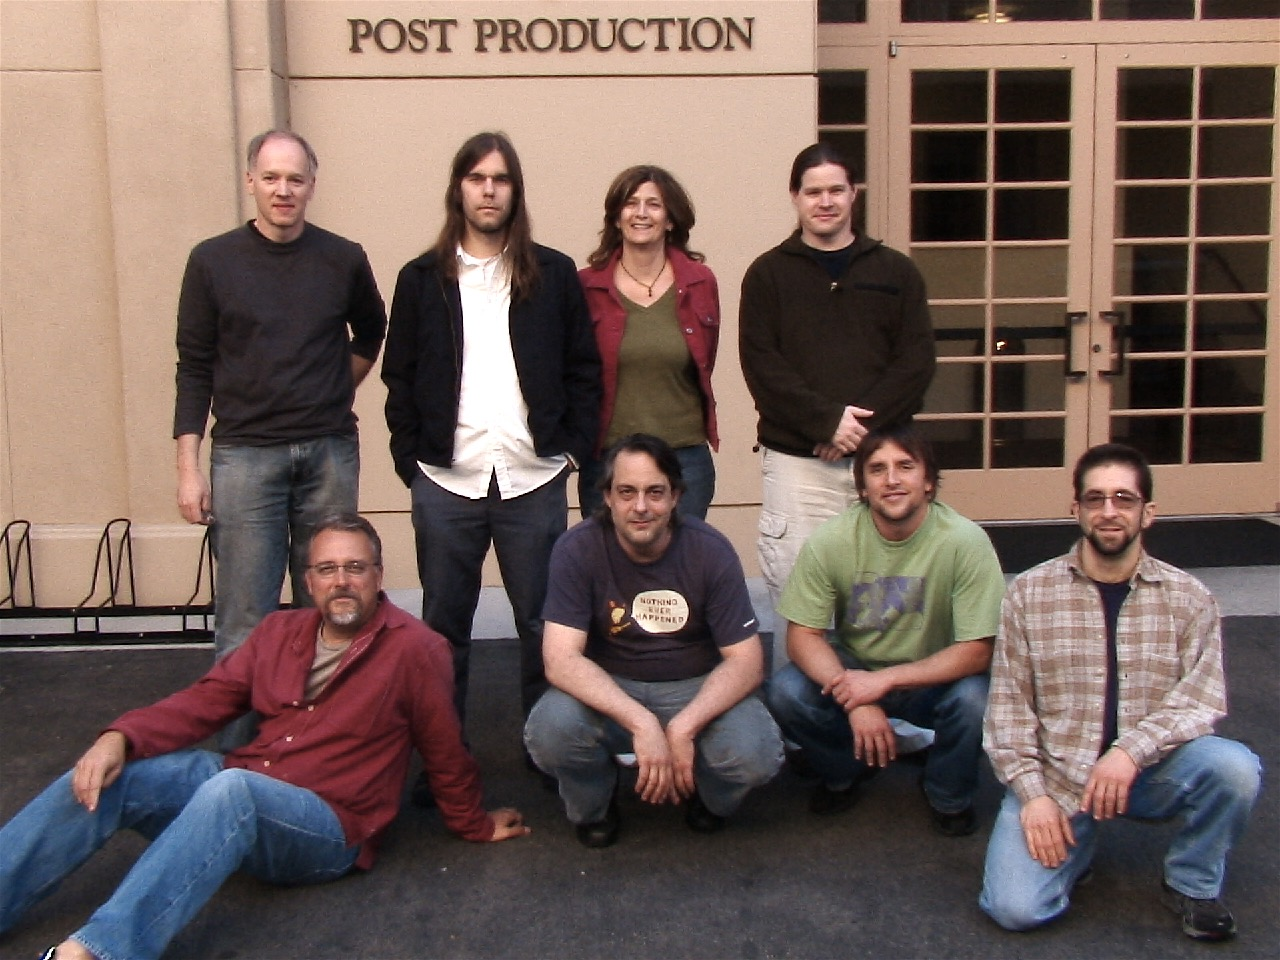 """Final mix for """"A Scanner Darkly.""""Outside Warner Brothers Burbank Stage 6.  [Top Left to Right]Tom Hammond, Grahm Reynolds (composer), Sandra Adair (picture editor), Jeremy Peirson (re-recording mixer)  [Bottom Left to Right]Skip Lievsay (re-recording mixer), Nic Ratner (music supervisor), Richard Linklater, Paul Berolzheimer (sound editor)   (2006)"""